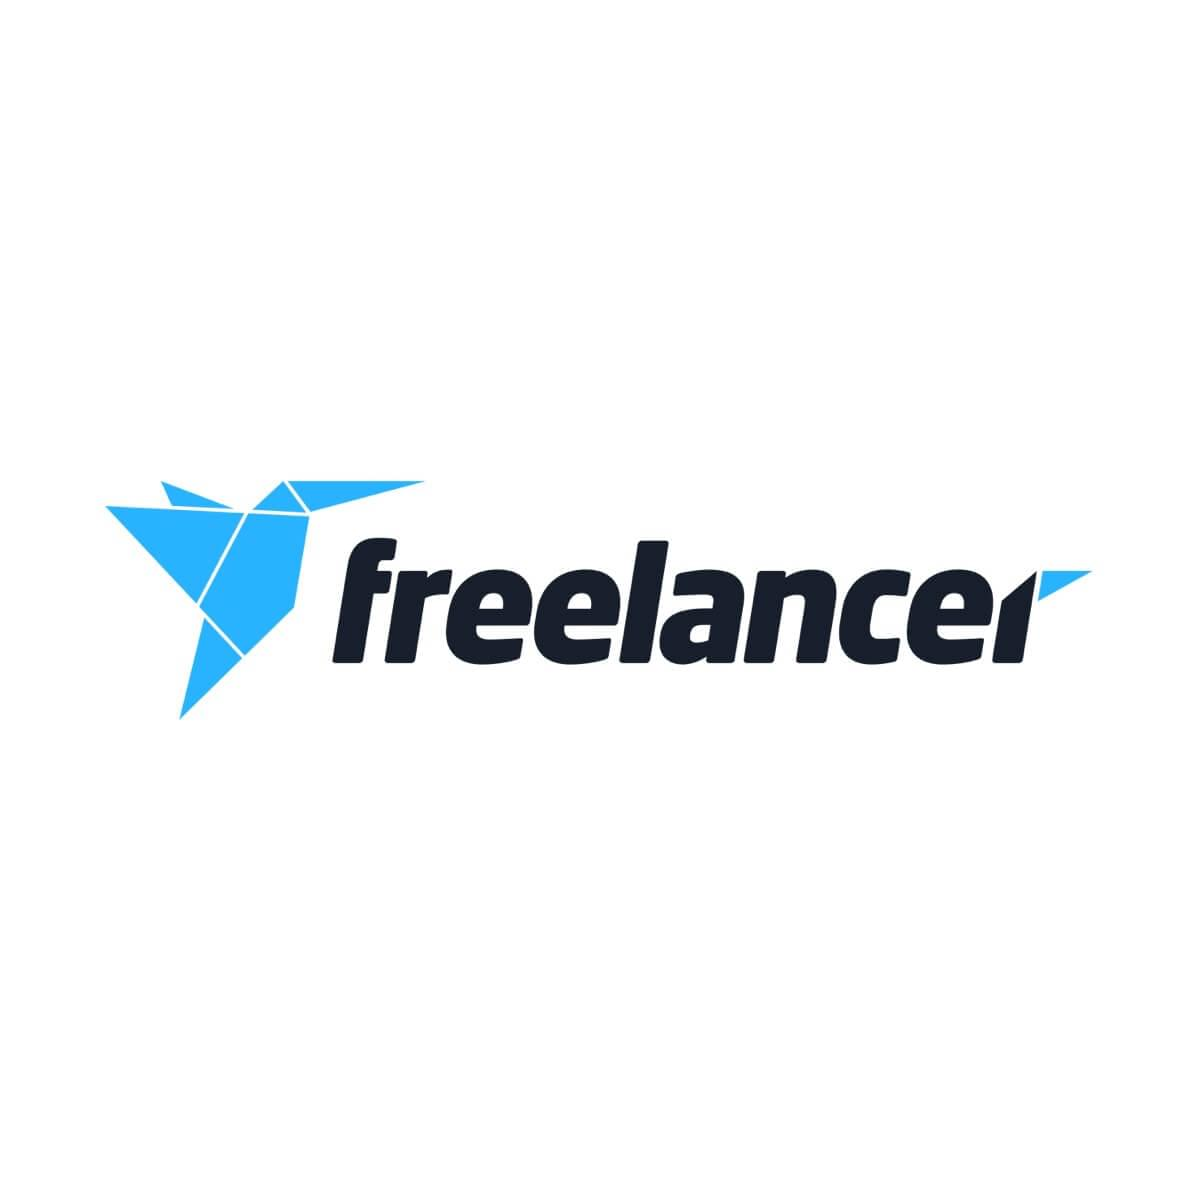 Website Design Jobs For March 2019 Freelancer